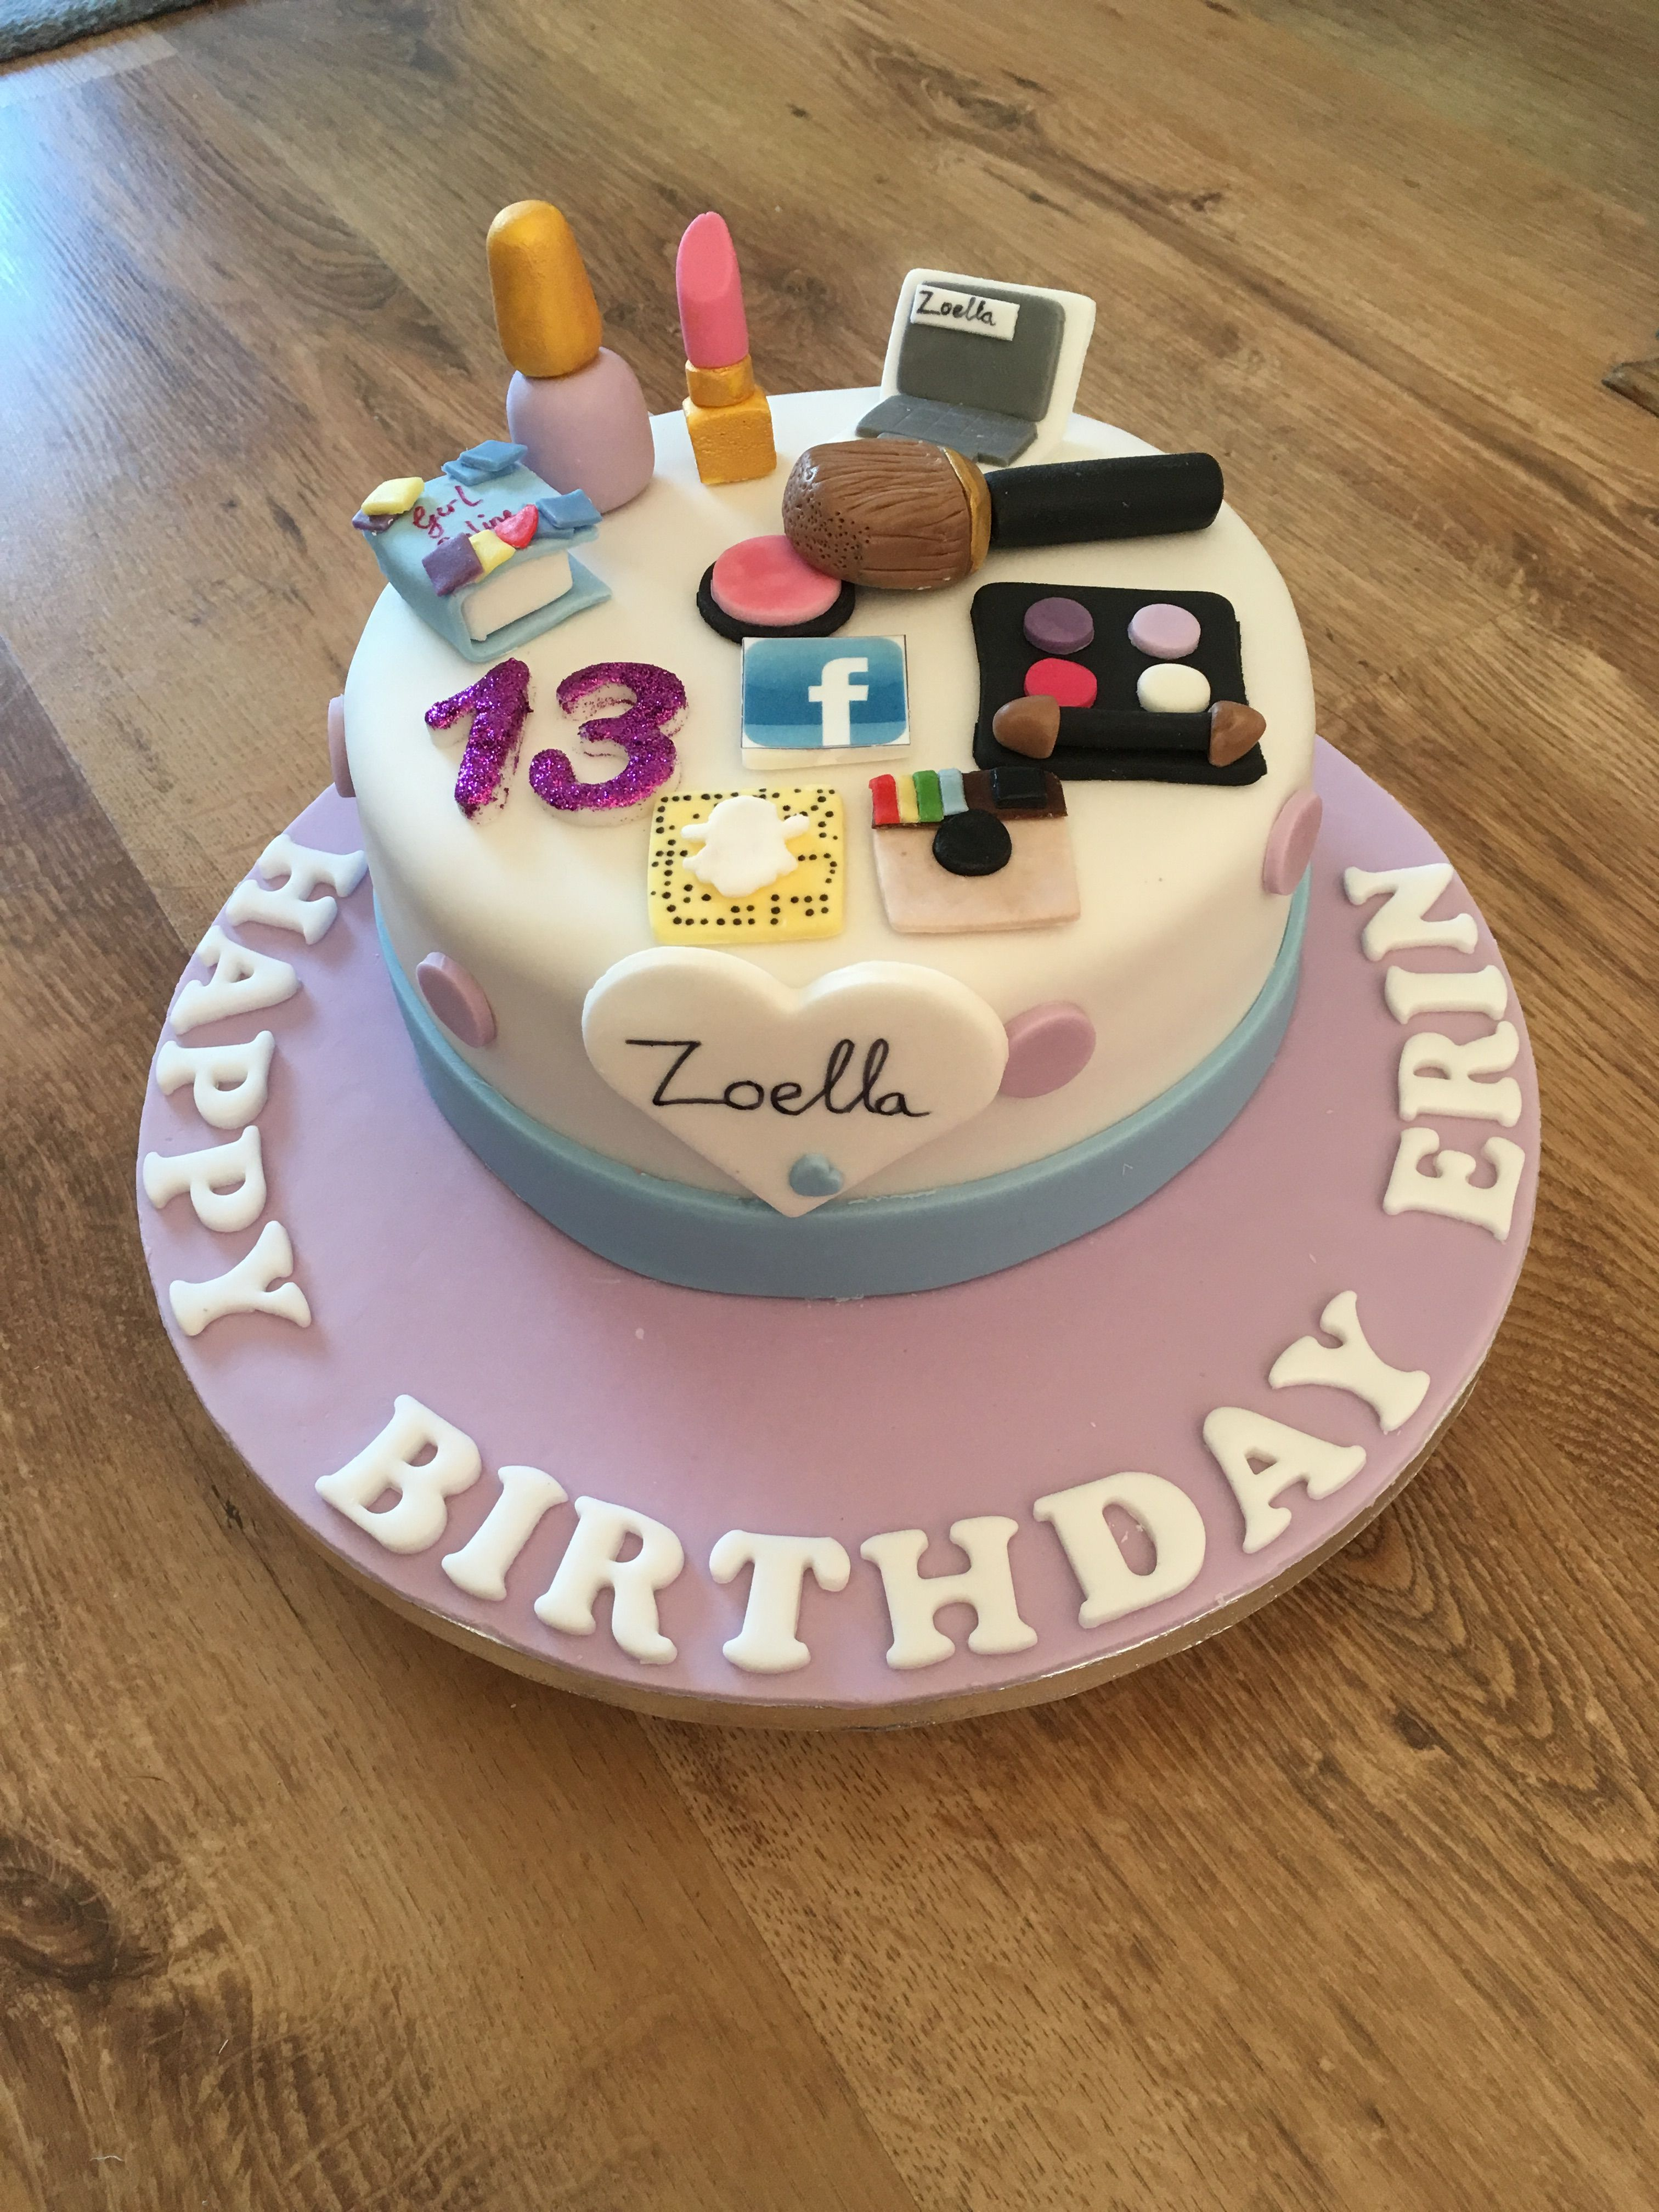 13Th Birthday Cakes Zoella Theme Birthday Cake For 13 Year Old Bday Party Pinterest